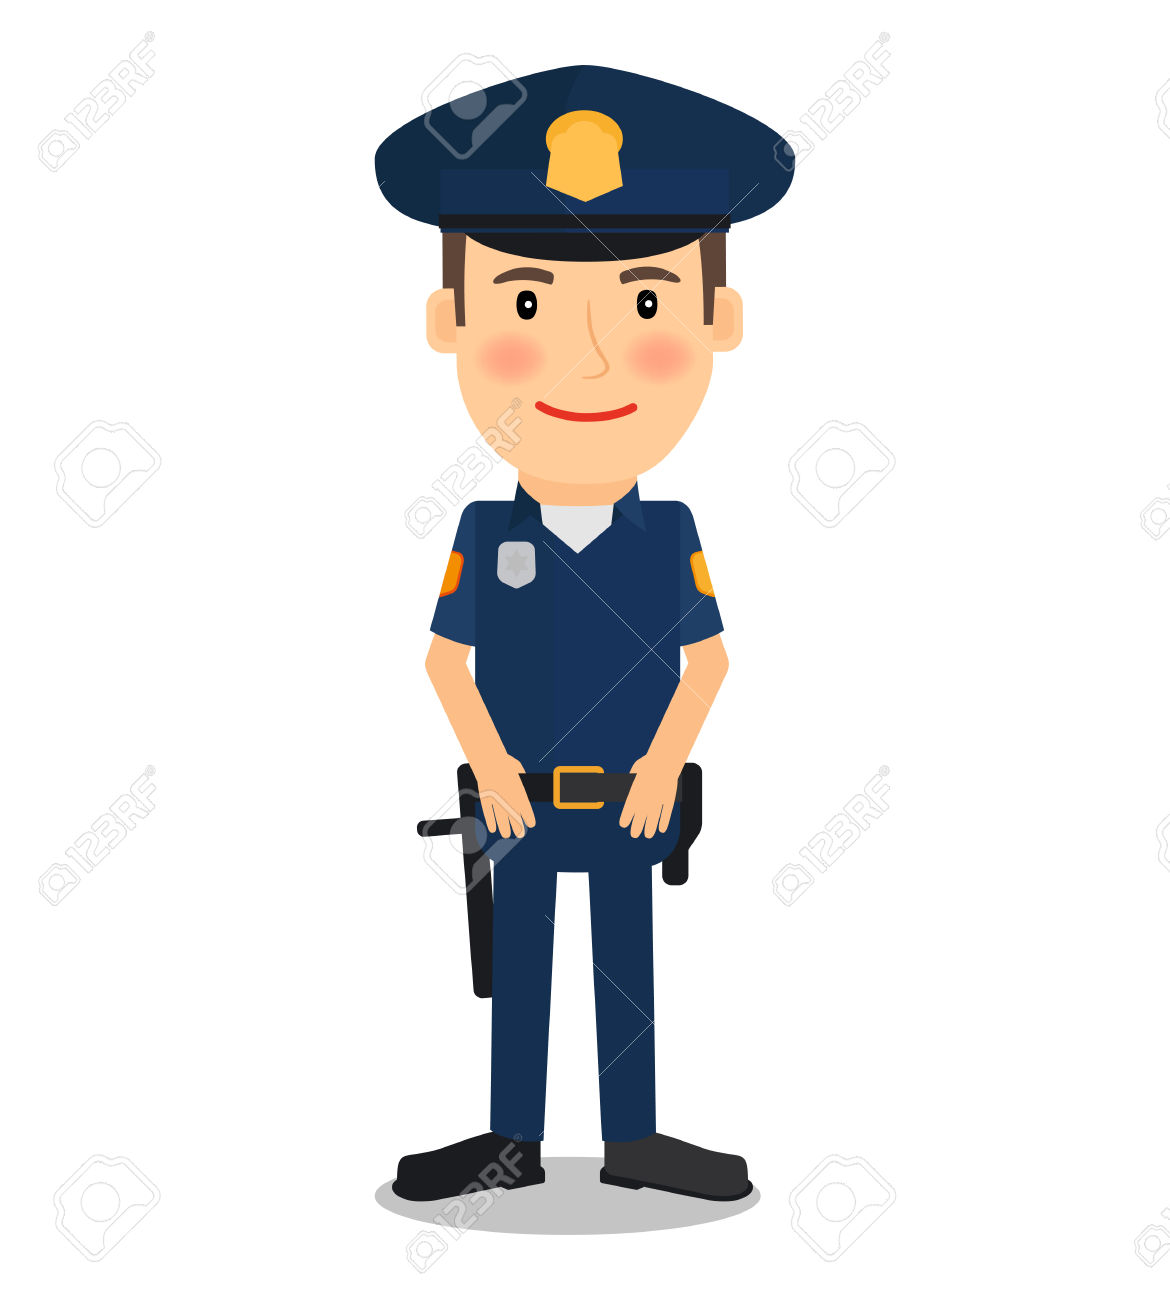 Cop clipart peace officer. Image of police free